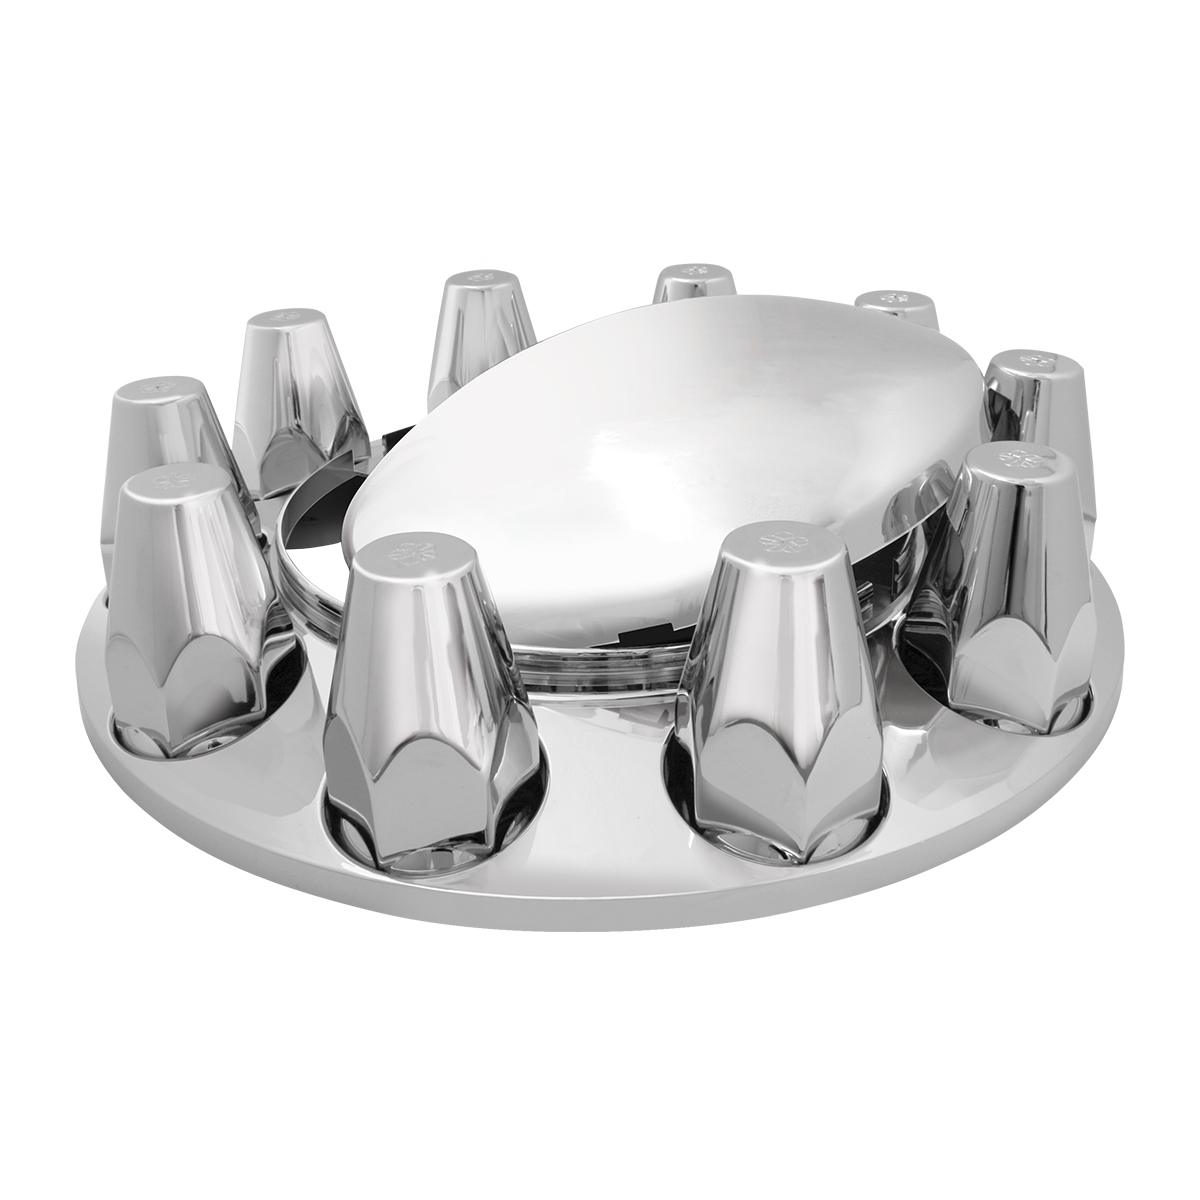 40131 & 40134 Chrome Plastic ABS Front Axle Covers with Removable Standard Hub Cap